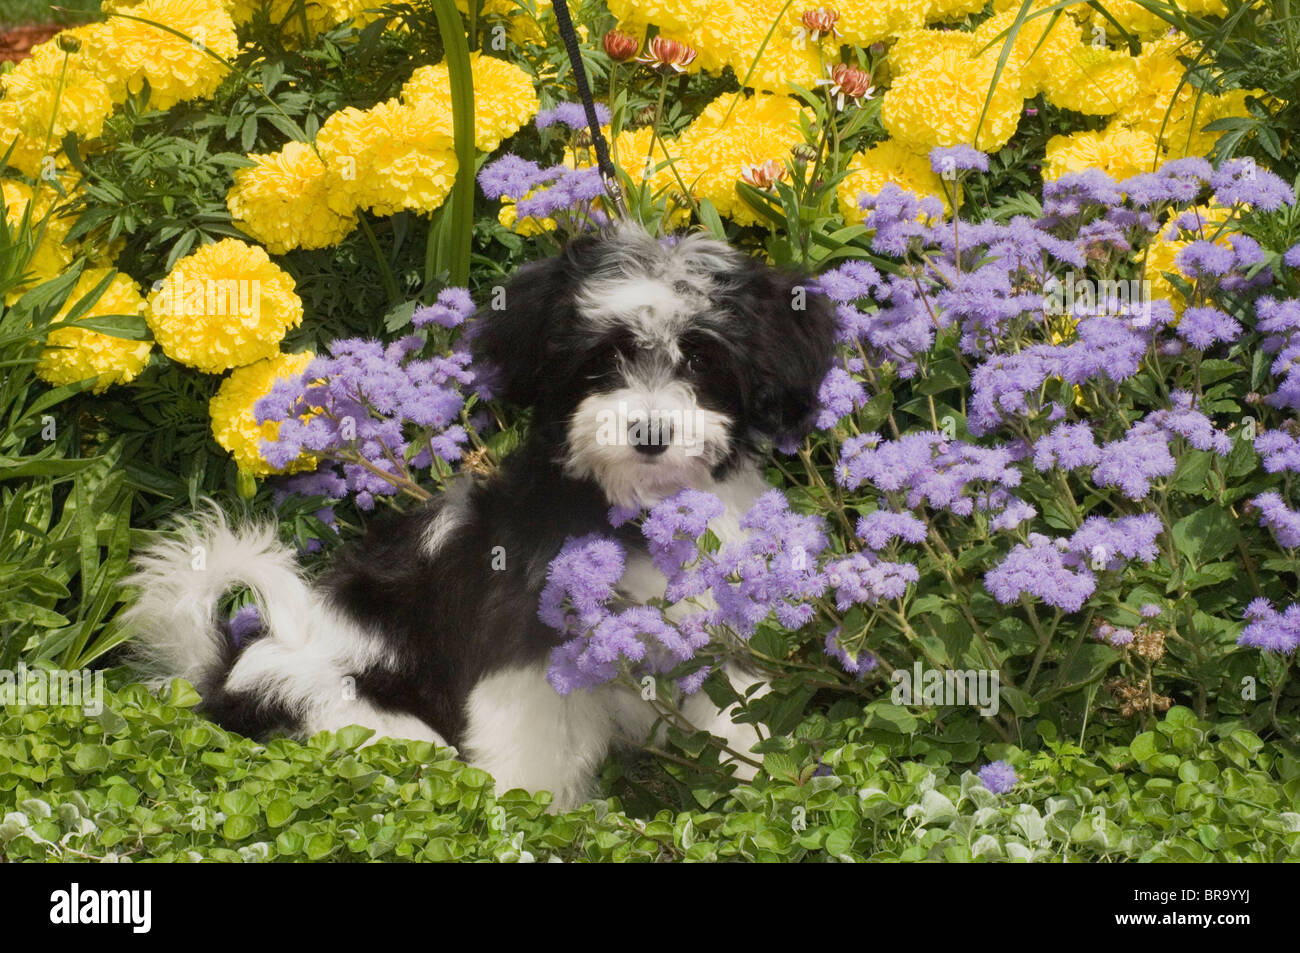 Cute Havanese Puppy Outdoor In Yellow And Purple Flowers Stock Photo